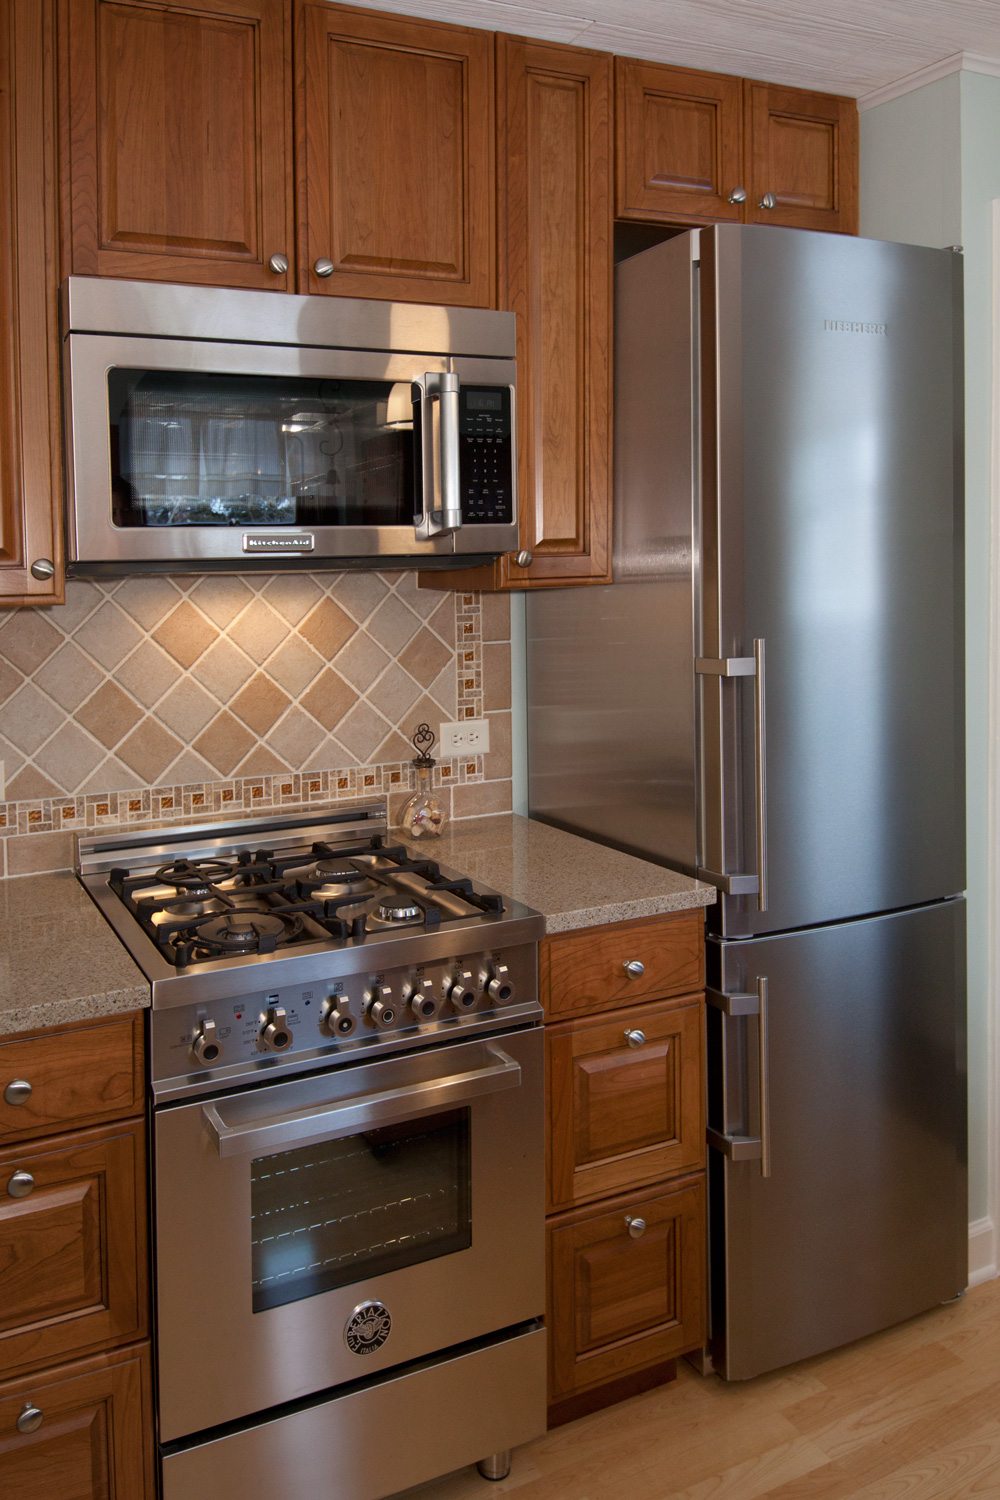 kitchen cabinet repair island pendant small remodel, elmwood park il - better kitchens